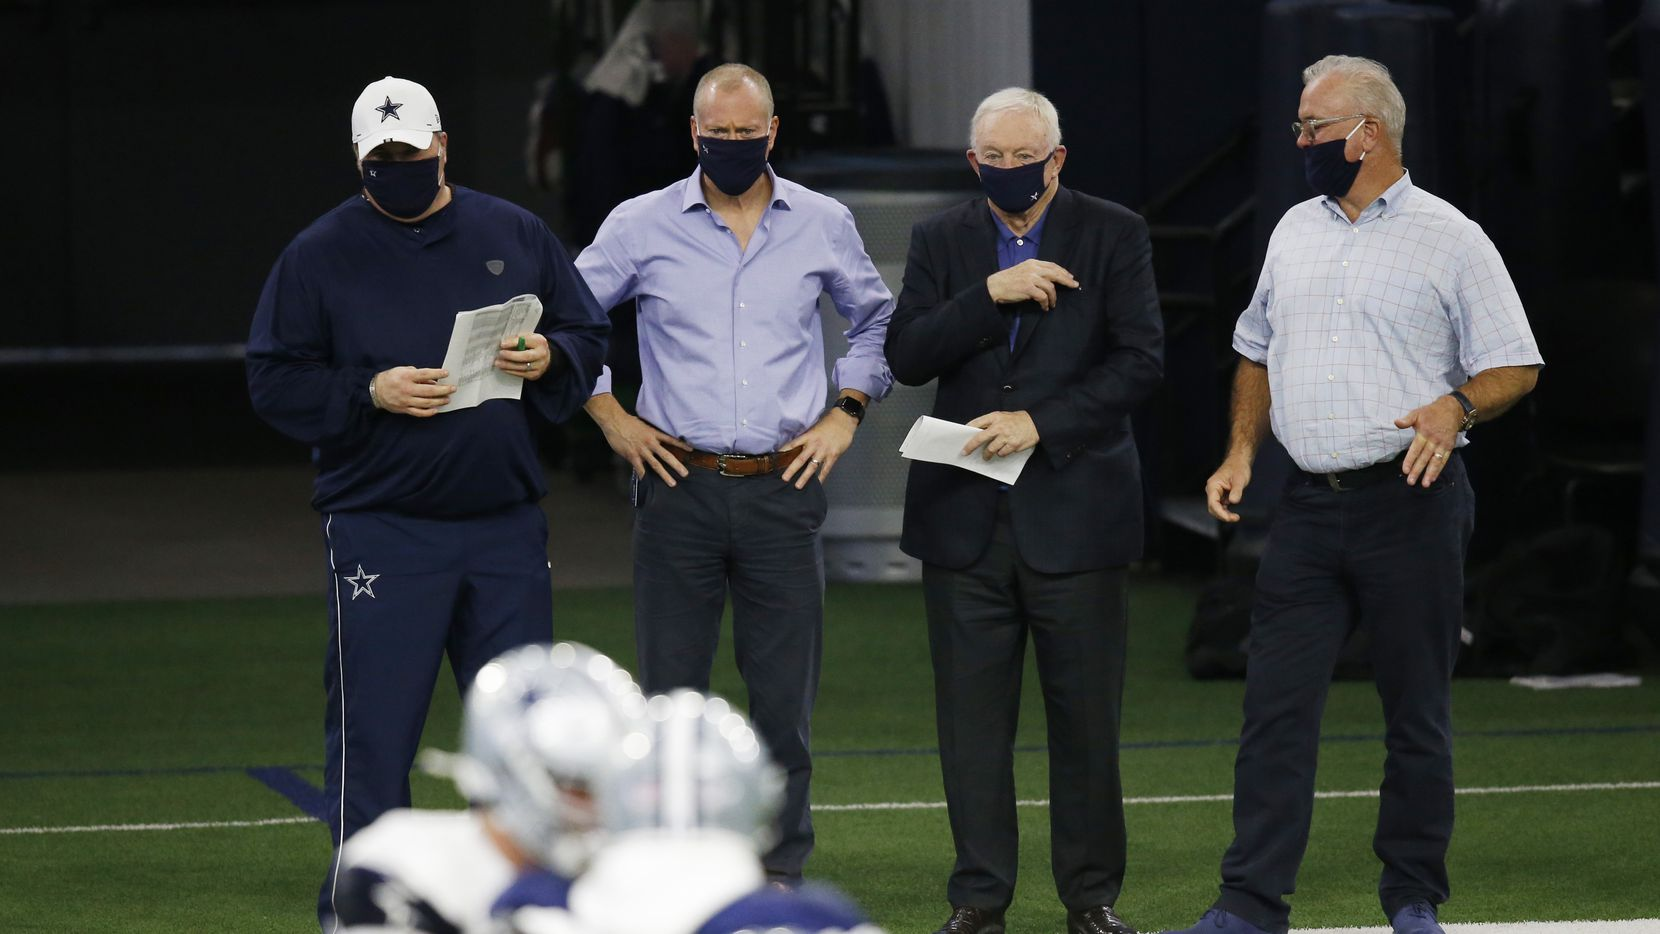 Dallas Cowboys head coach Mike McCarthy, Dallas Cowboys executive vice president Jerry Jones Jr., Dallas Cowboys owner and general manager Jerry Jones and Dallas Cowboys executive vice president Stephen Jones watch practice during training camp at the Dallas Cowboys headquarters at The Star in Frisco, Texas on Monday, August 31, 2020. (Vernon Bryant/The Dallas Morning News)